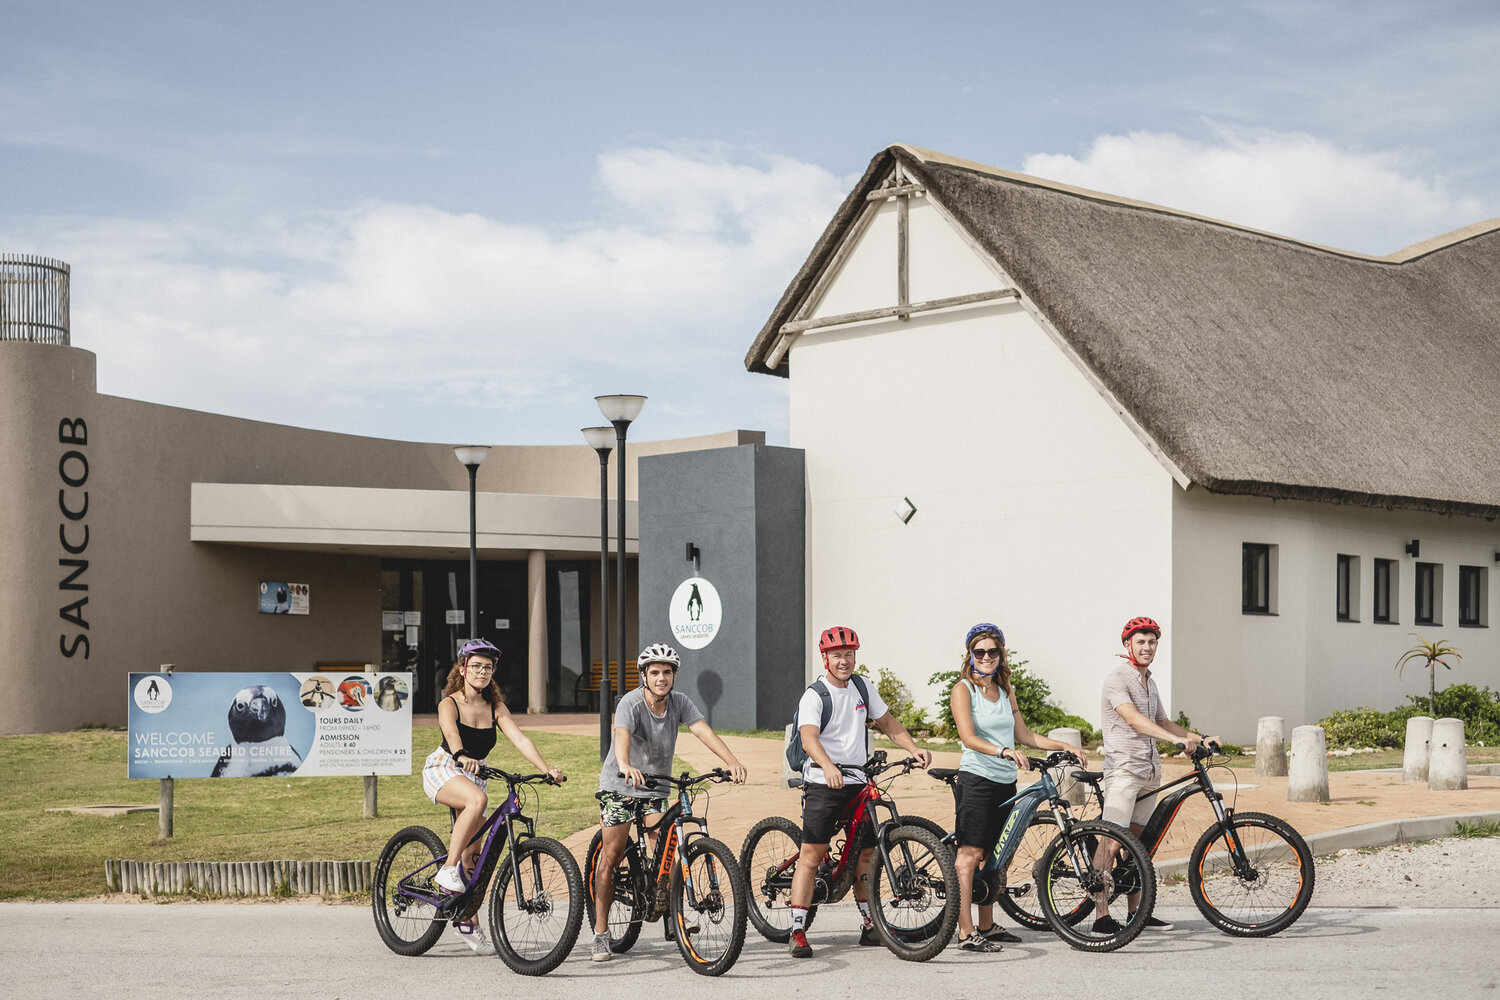 E-Bike Experience - E-bikes is a great tool for beginners to use to get into mountain biking and the same goes for those that are unable to pedal or ride a standard bicycle, as this may offer more accessibility to some.